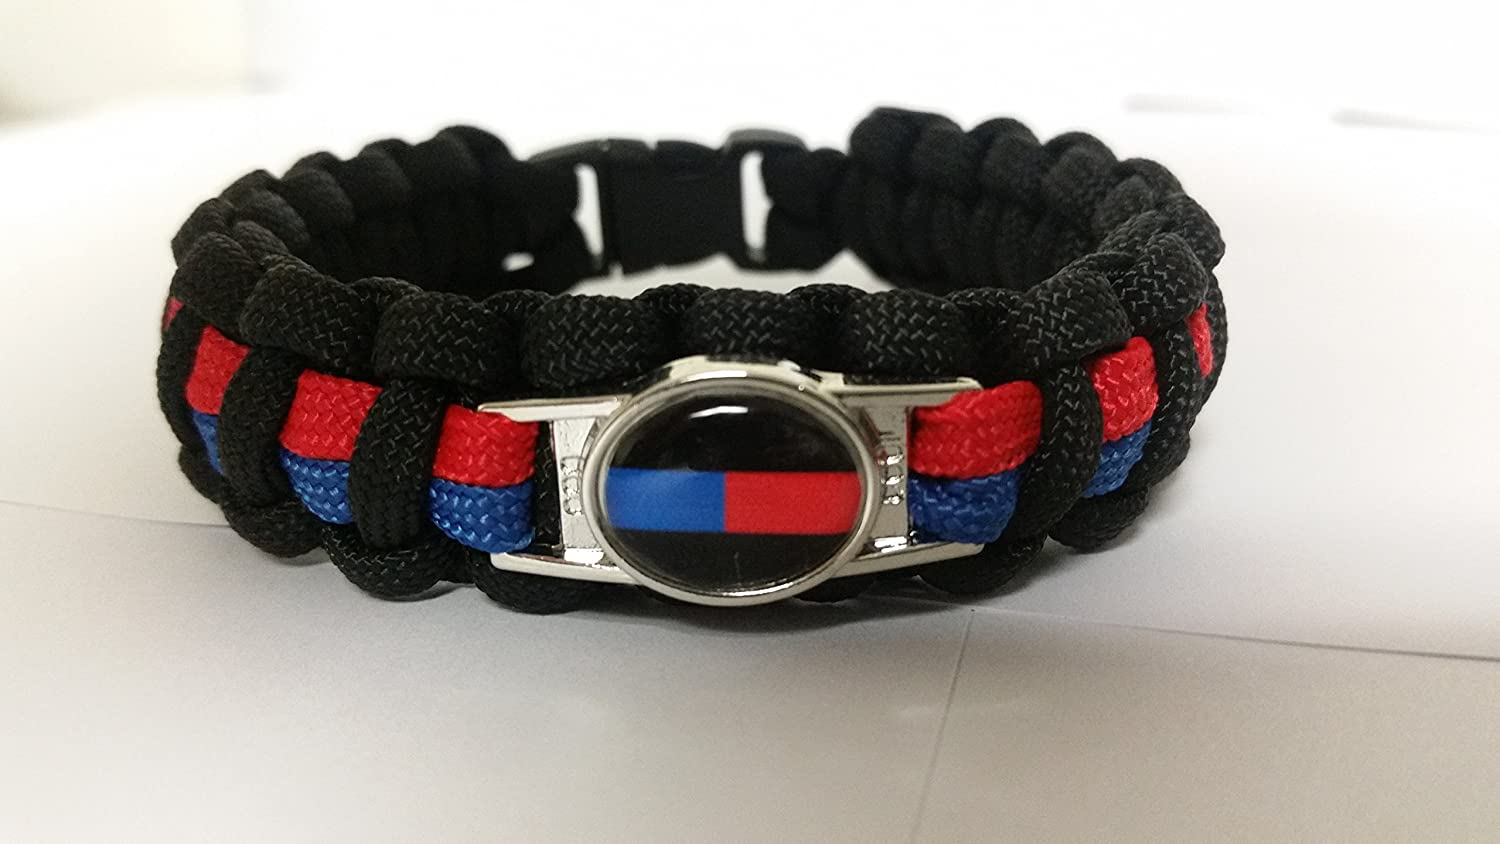 store mom flag the pcs thin line rbvajfkvlz bracelet paracord wife aeproduct back getsubject outdoor survival police blue product lot